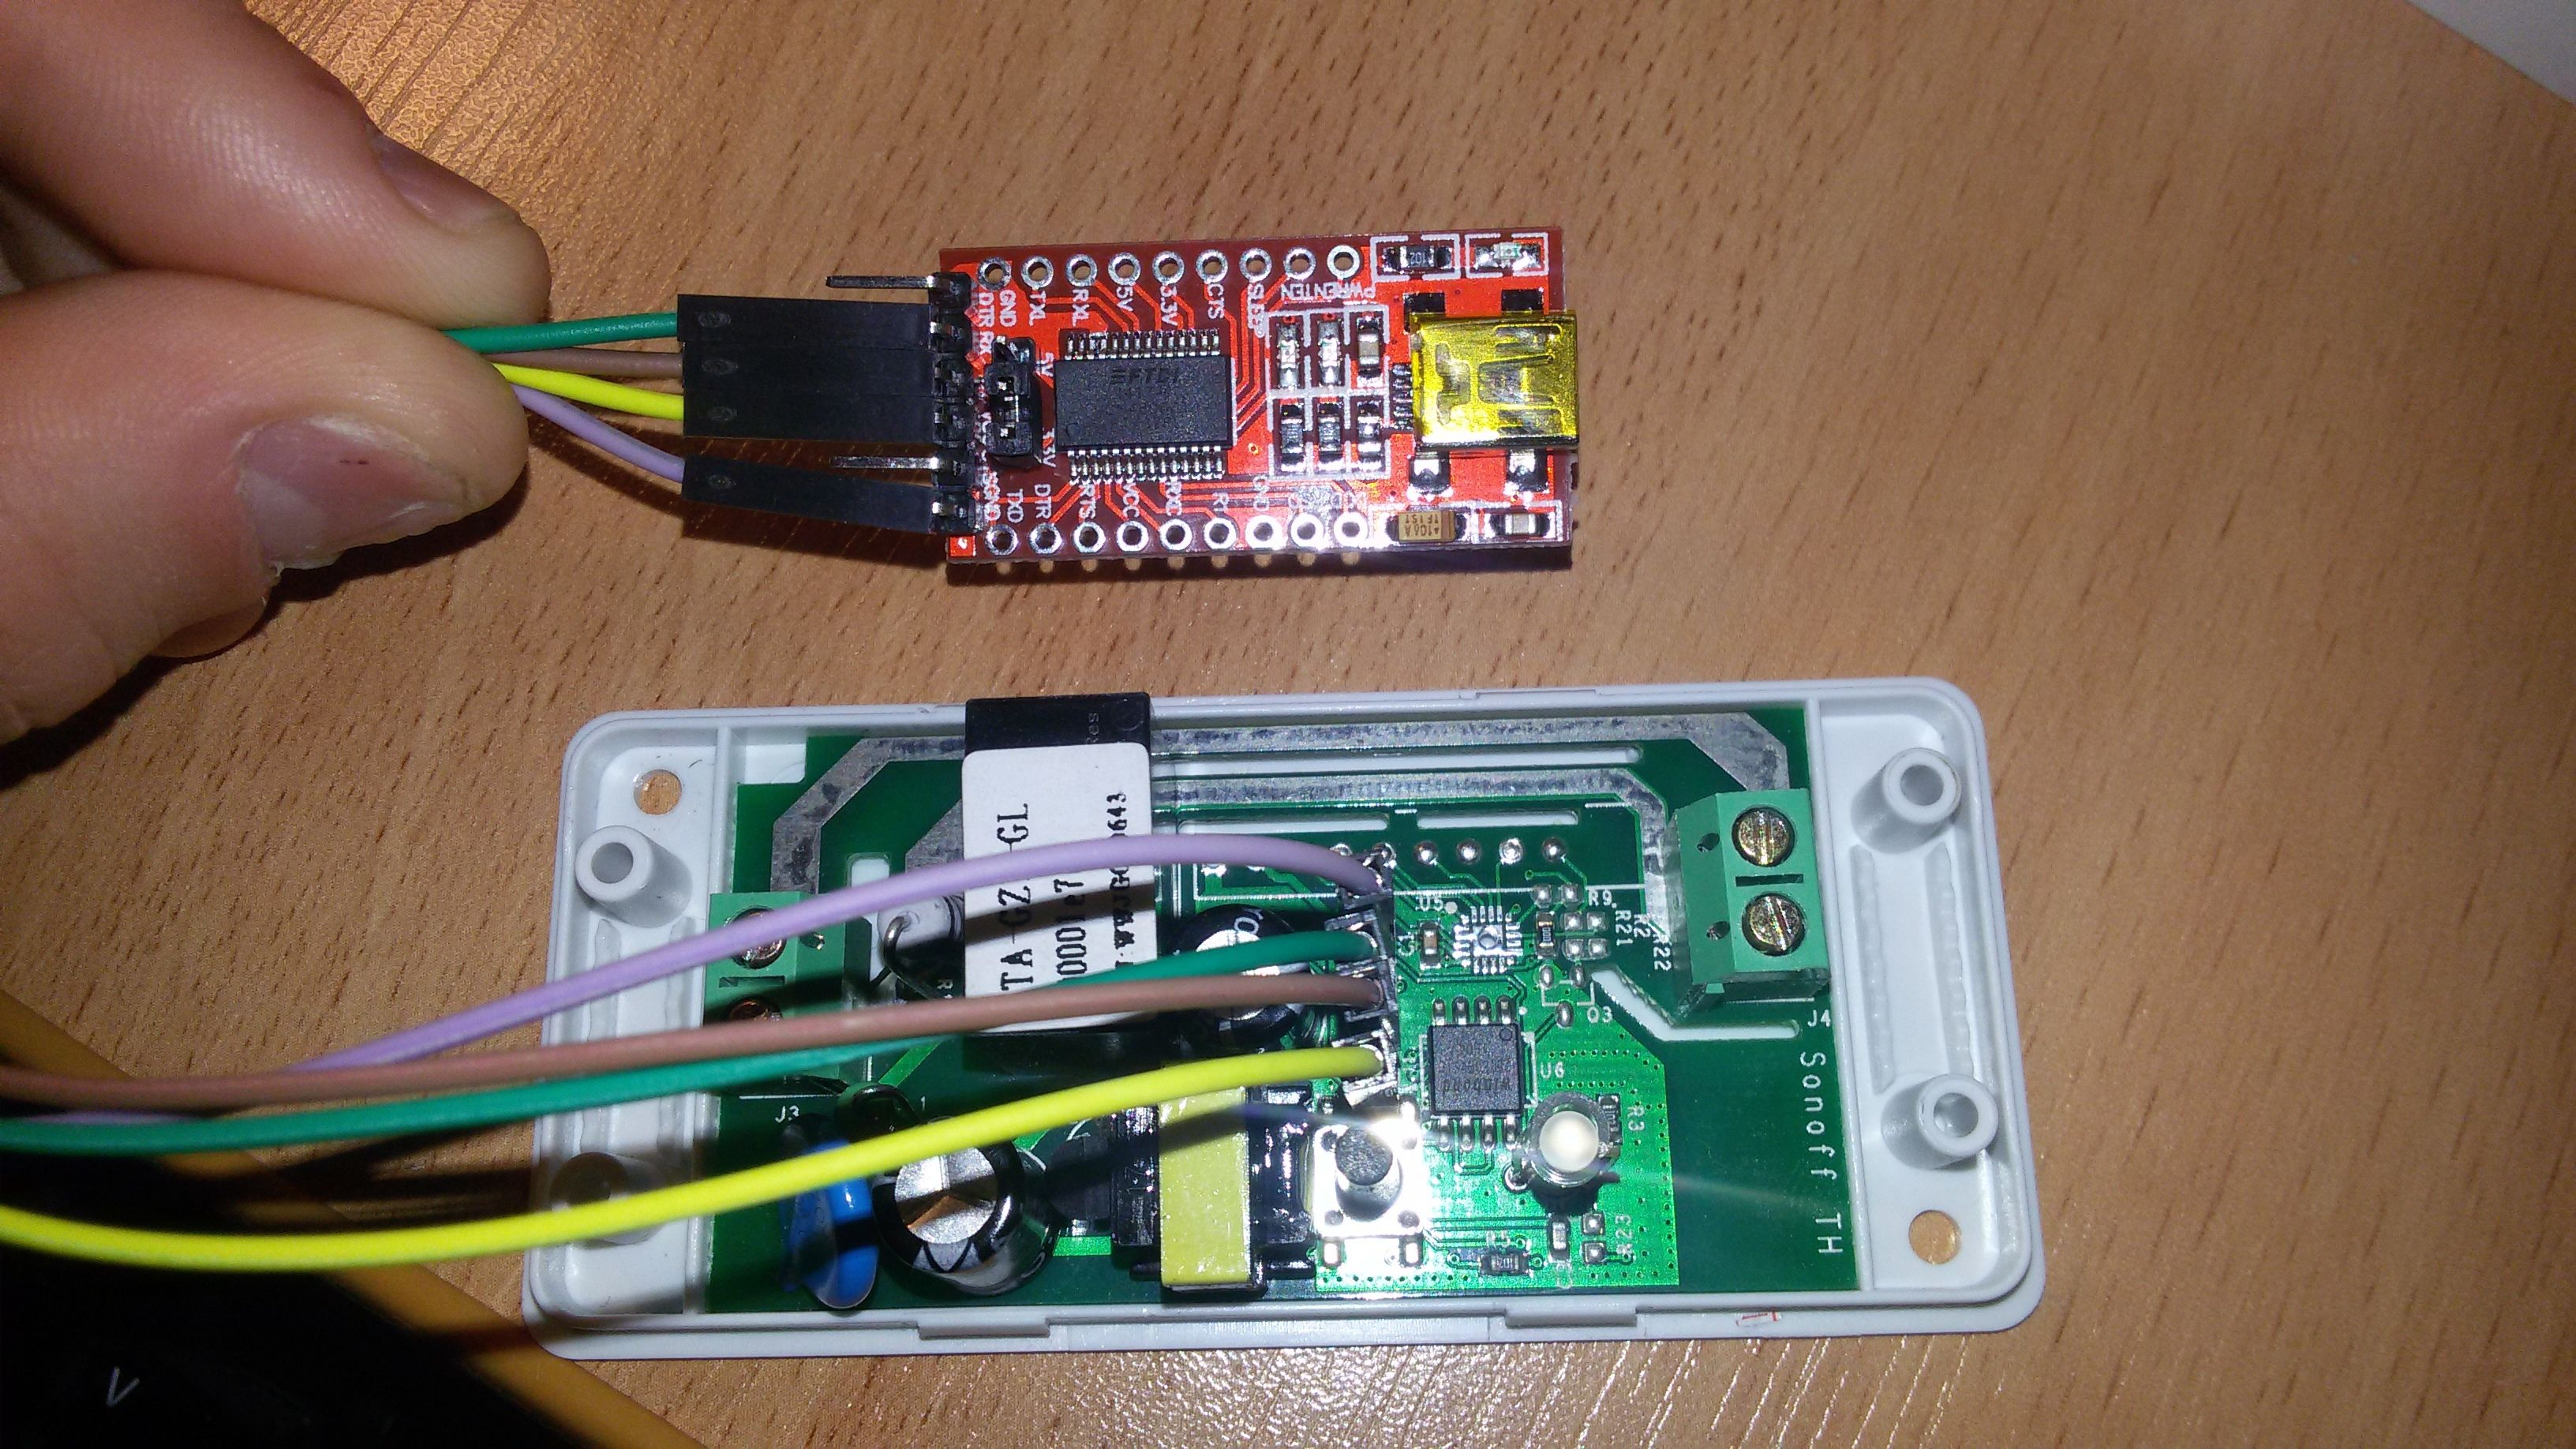 I conected Sonoff to Cayenne  [image] Solder pins to Sonoff